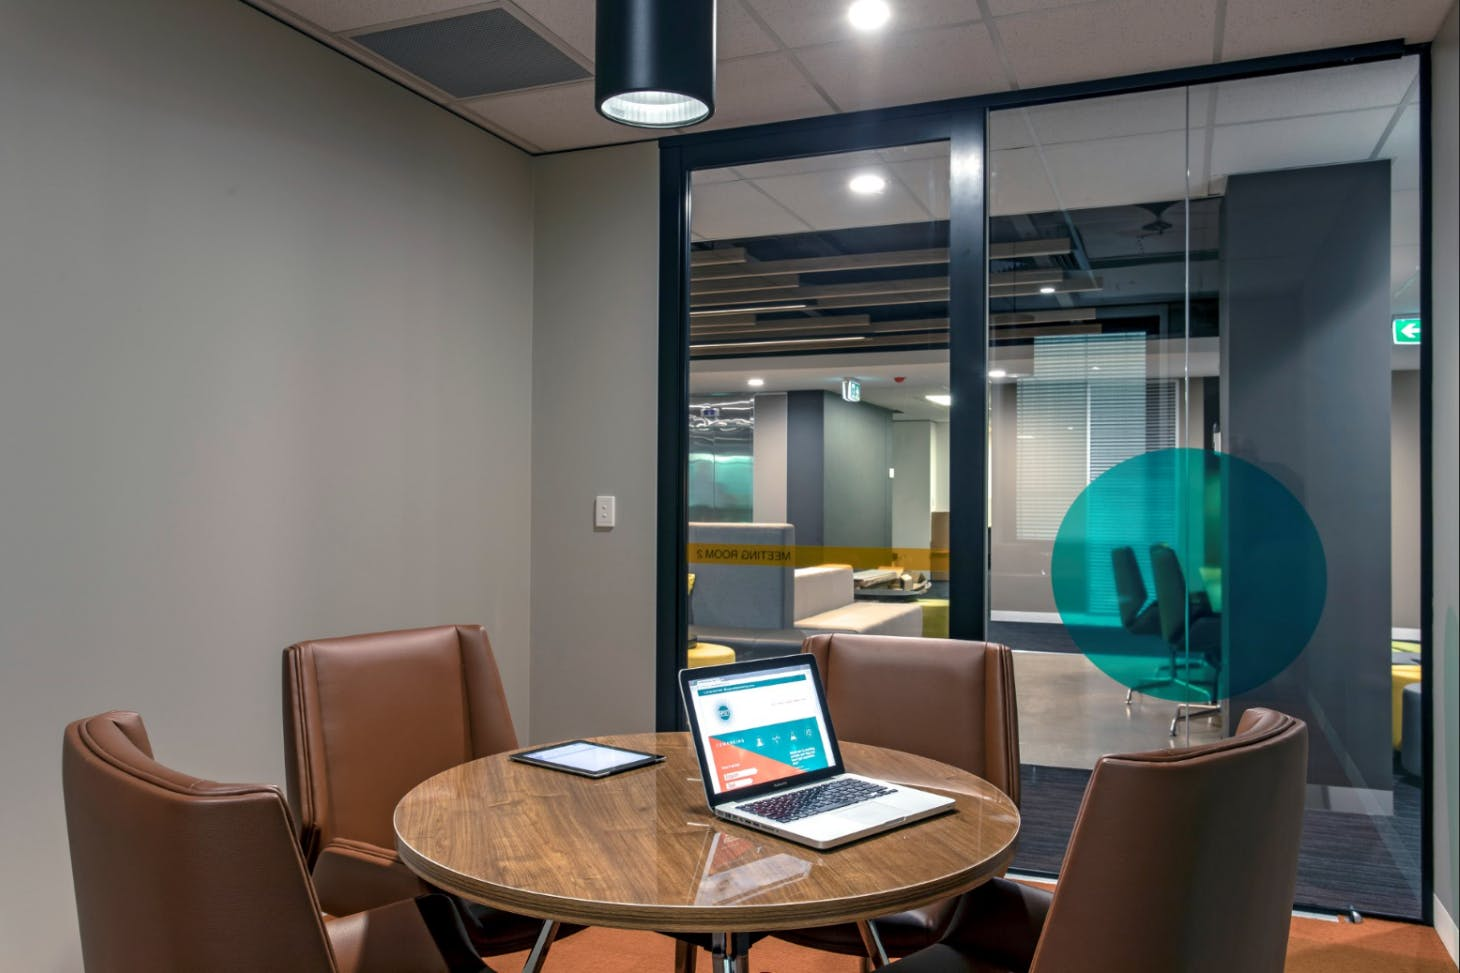 Suite 11, serviced office at Spot Co-Working, image 4